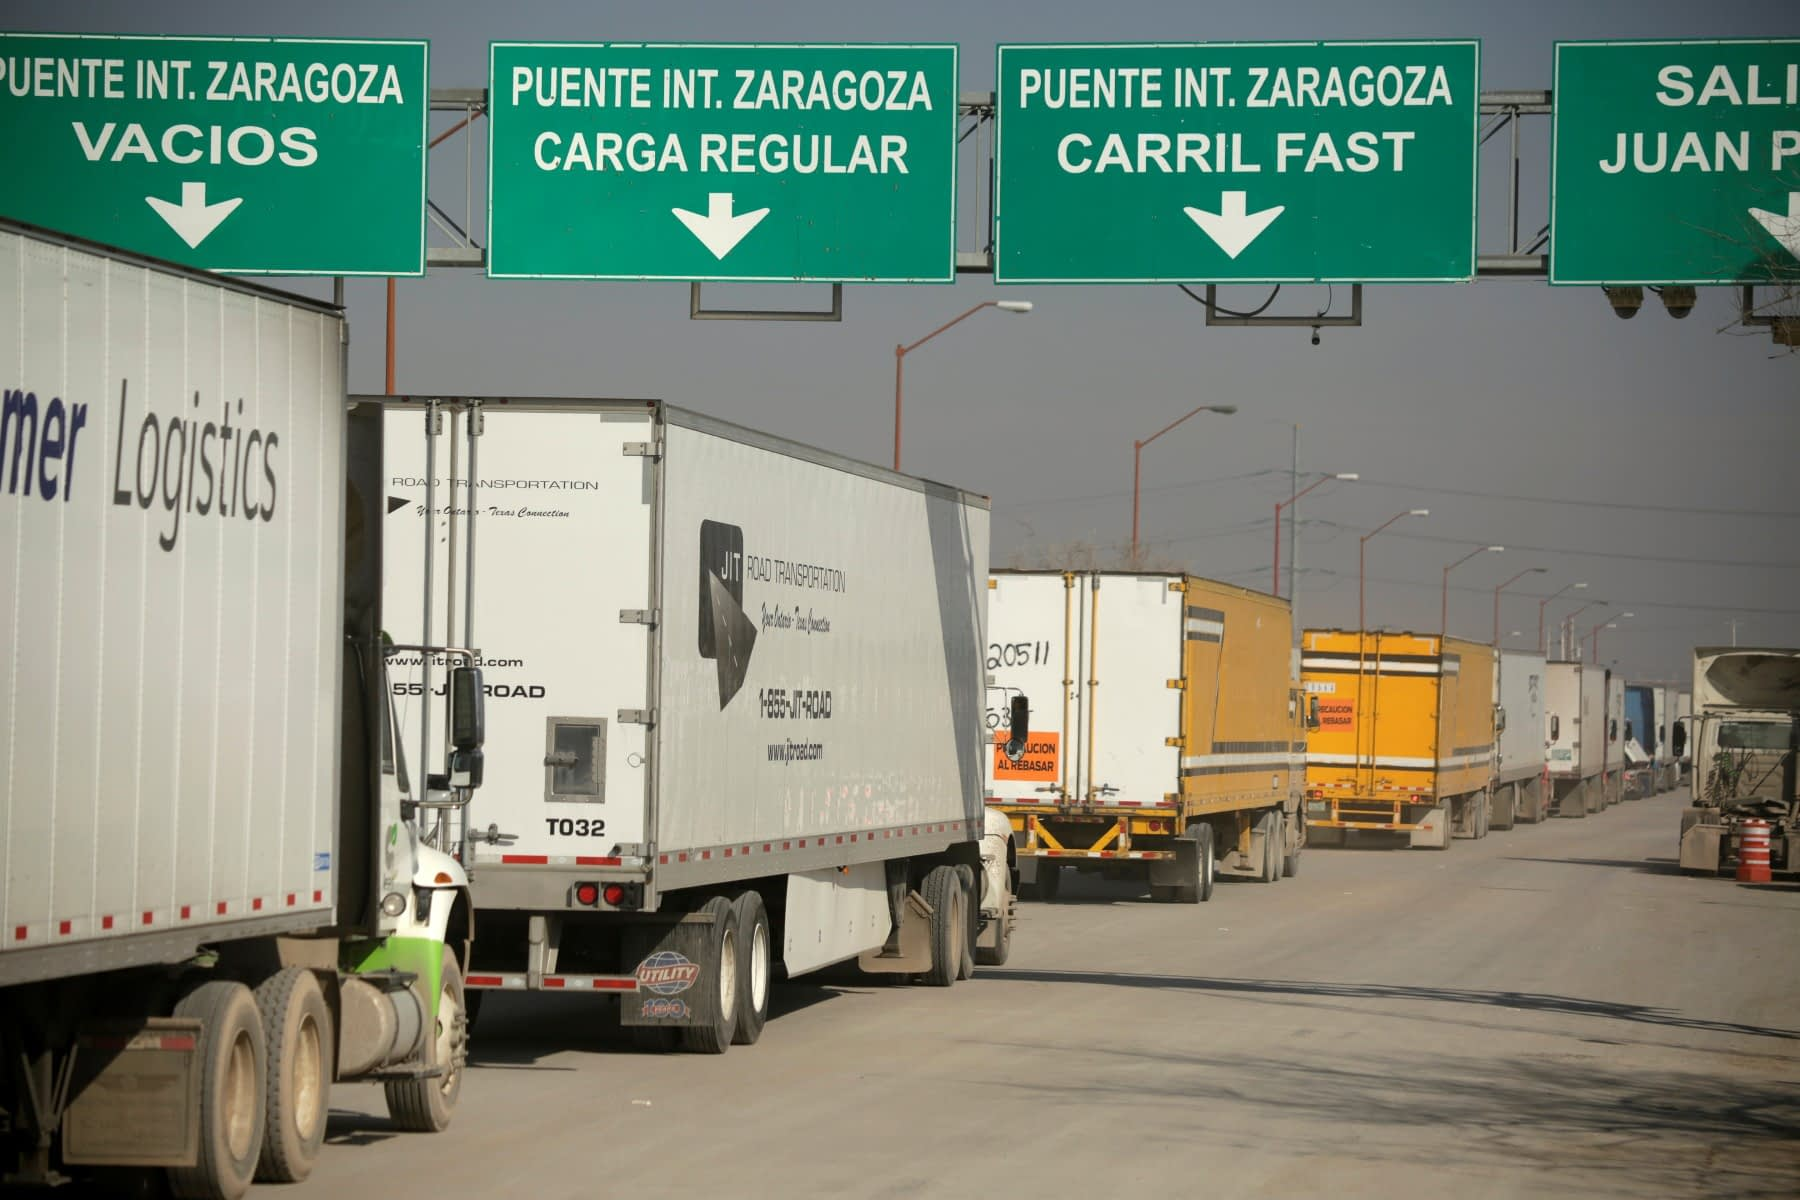 Exports in Juarez face obstacles